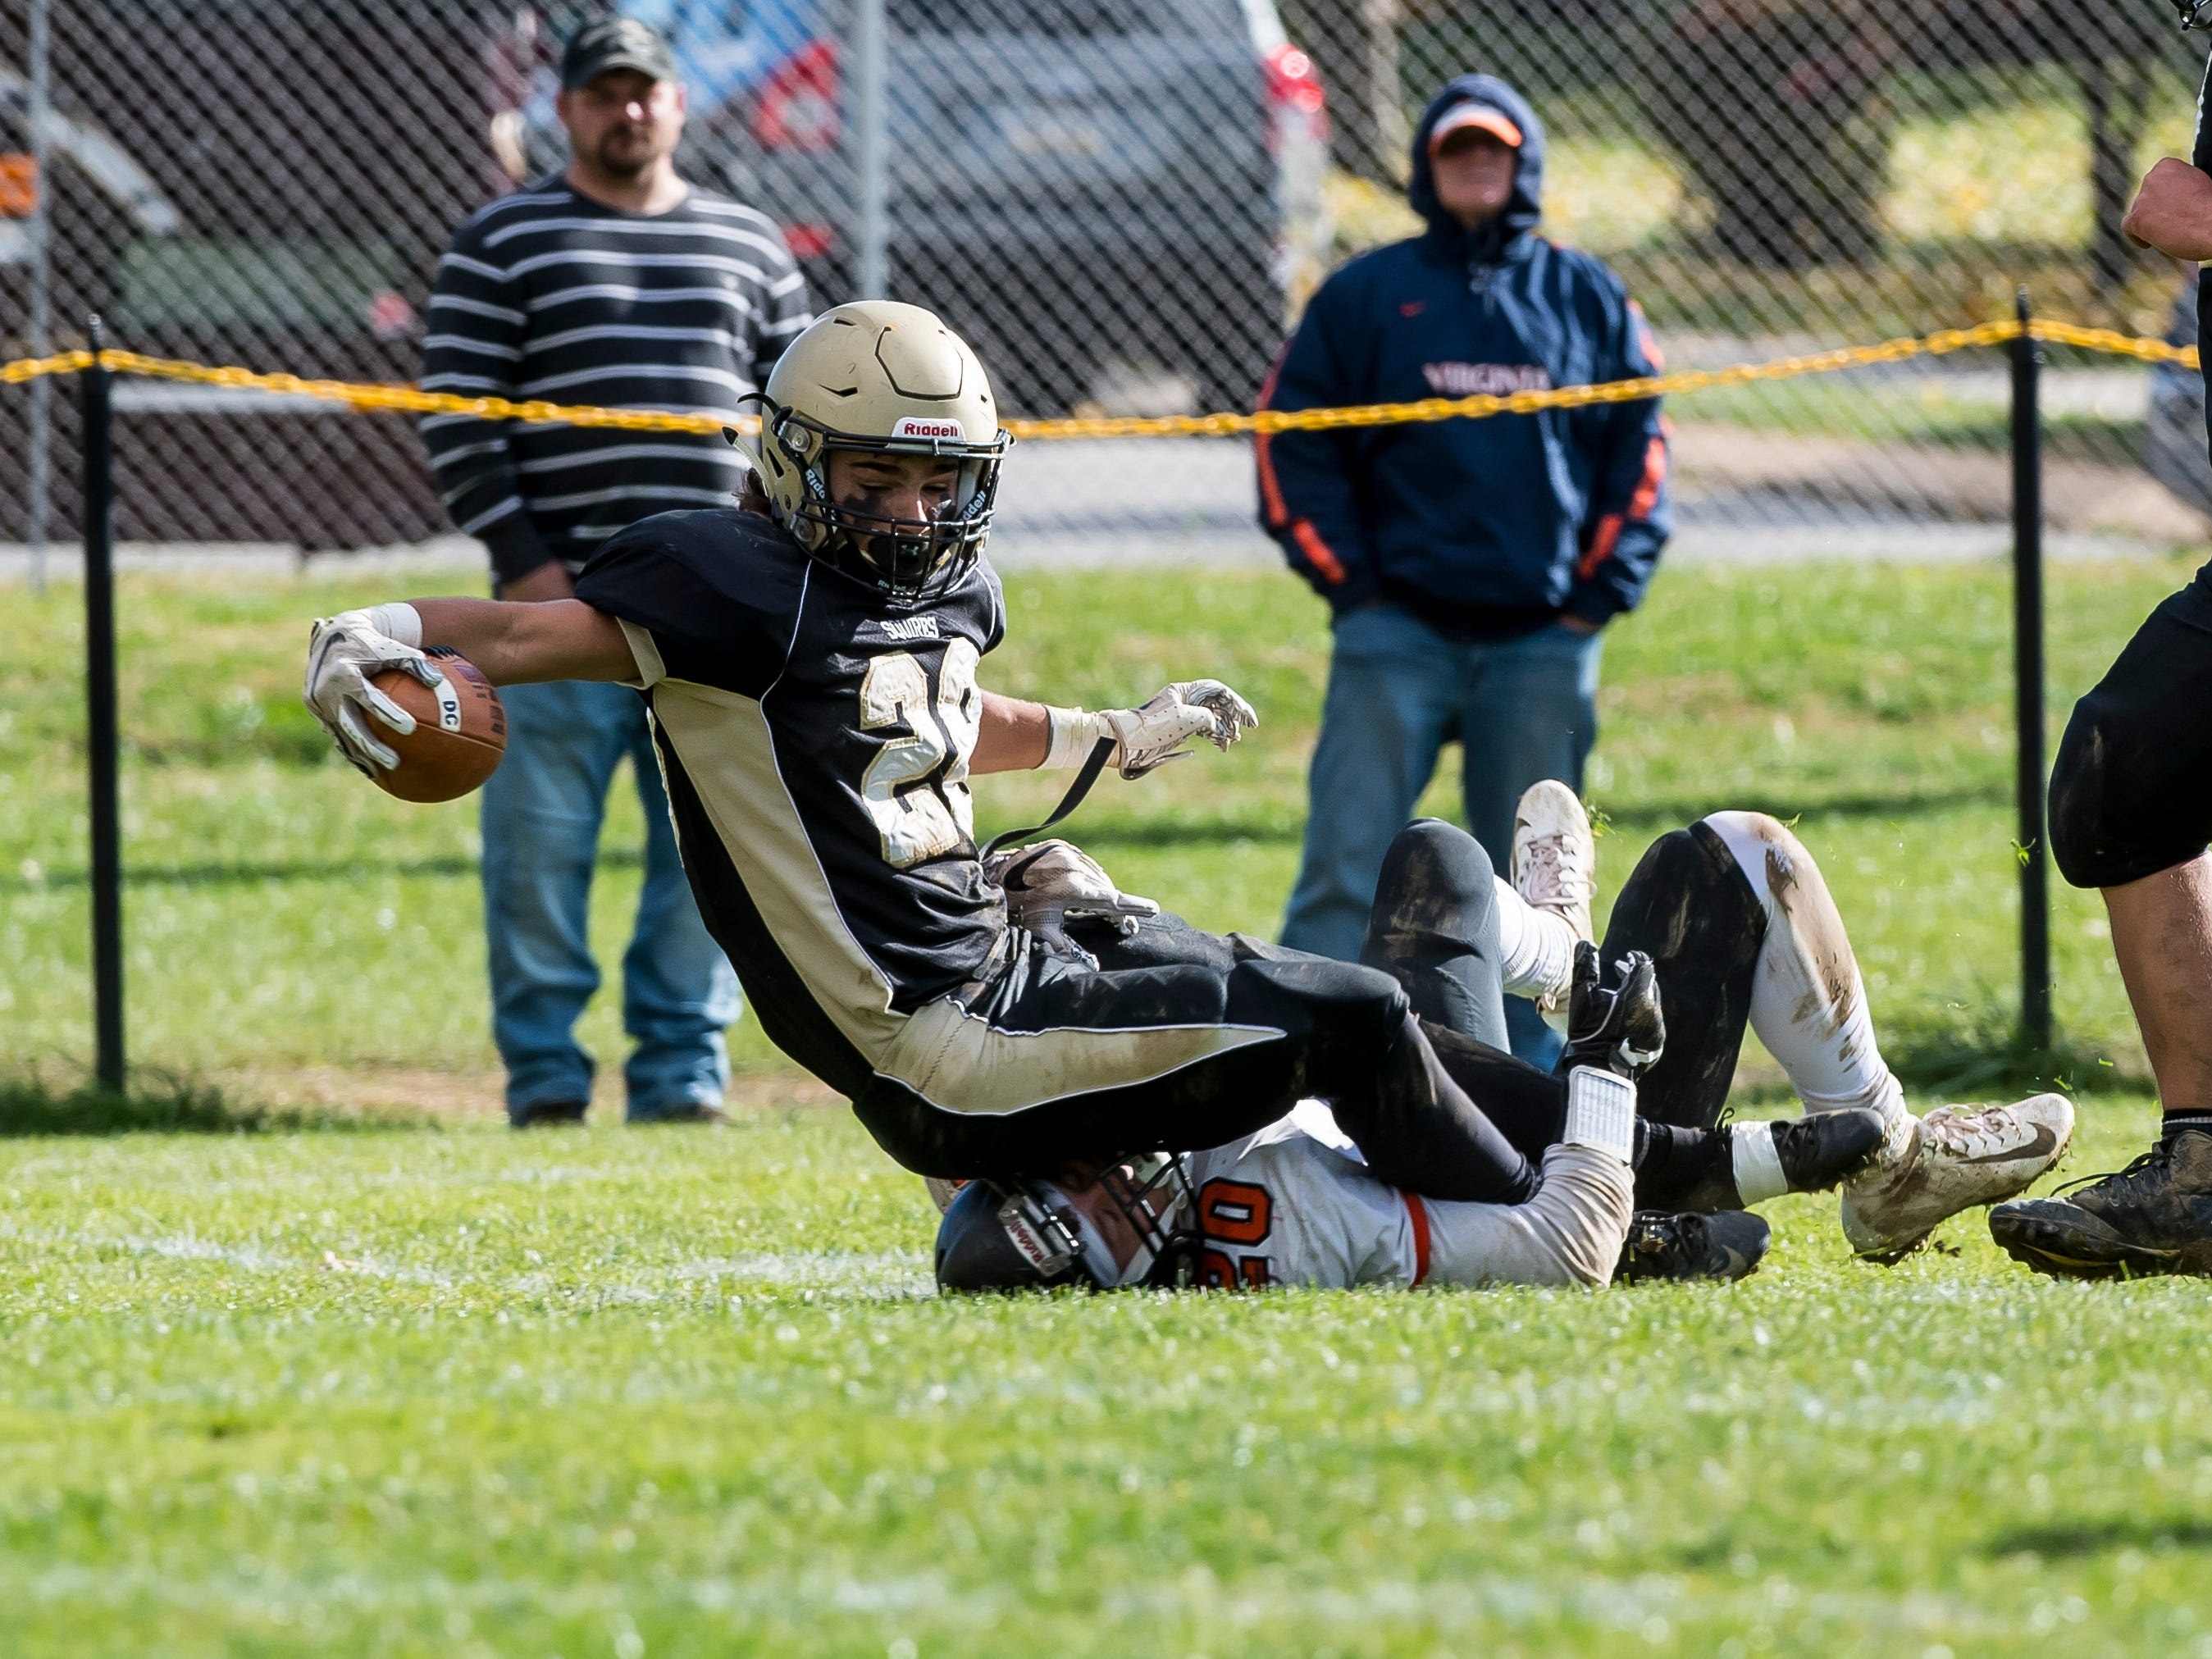 Delone Catholic's Joe Hernandez reaches out with the ball to cross the goal line and score a touchdown during a District III Class 2A semifinal game against Upper Dauphin on Saturday, November 3, 2018. The Squires won 48-23.